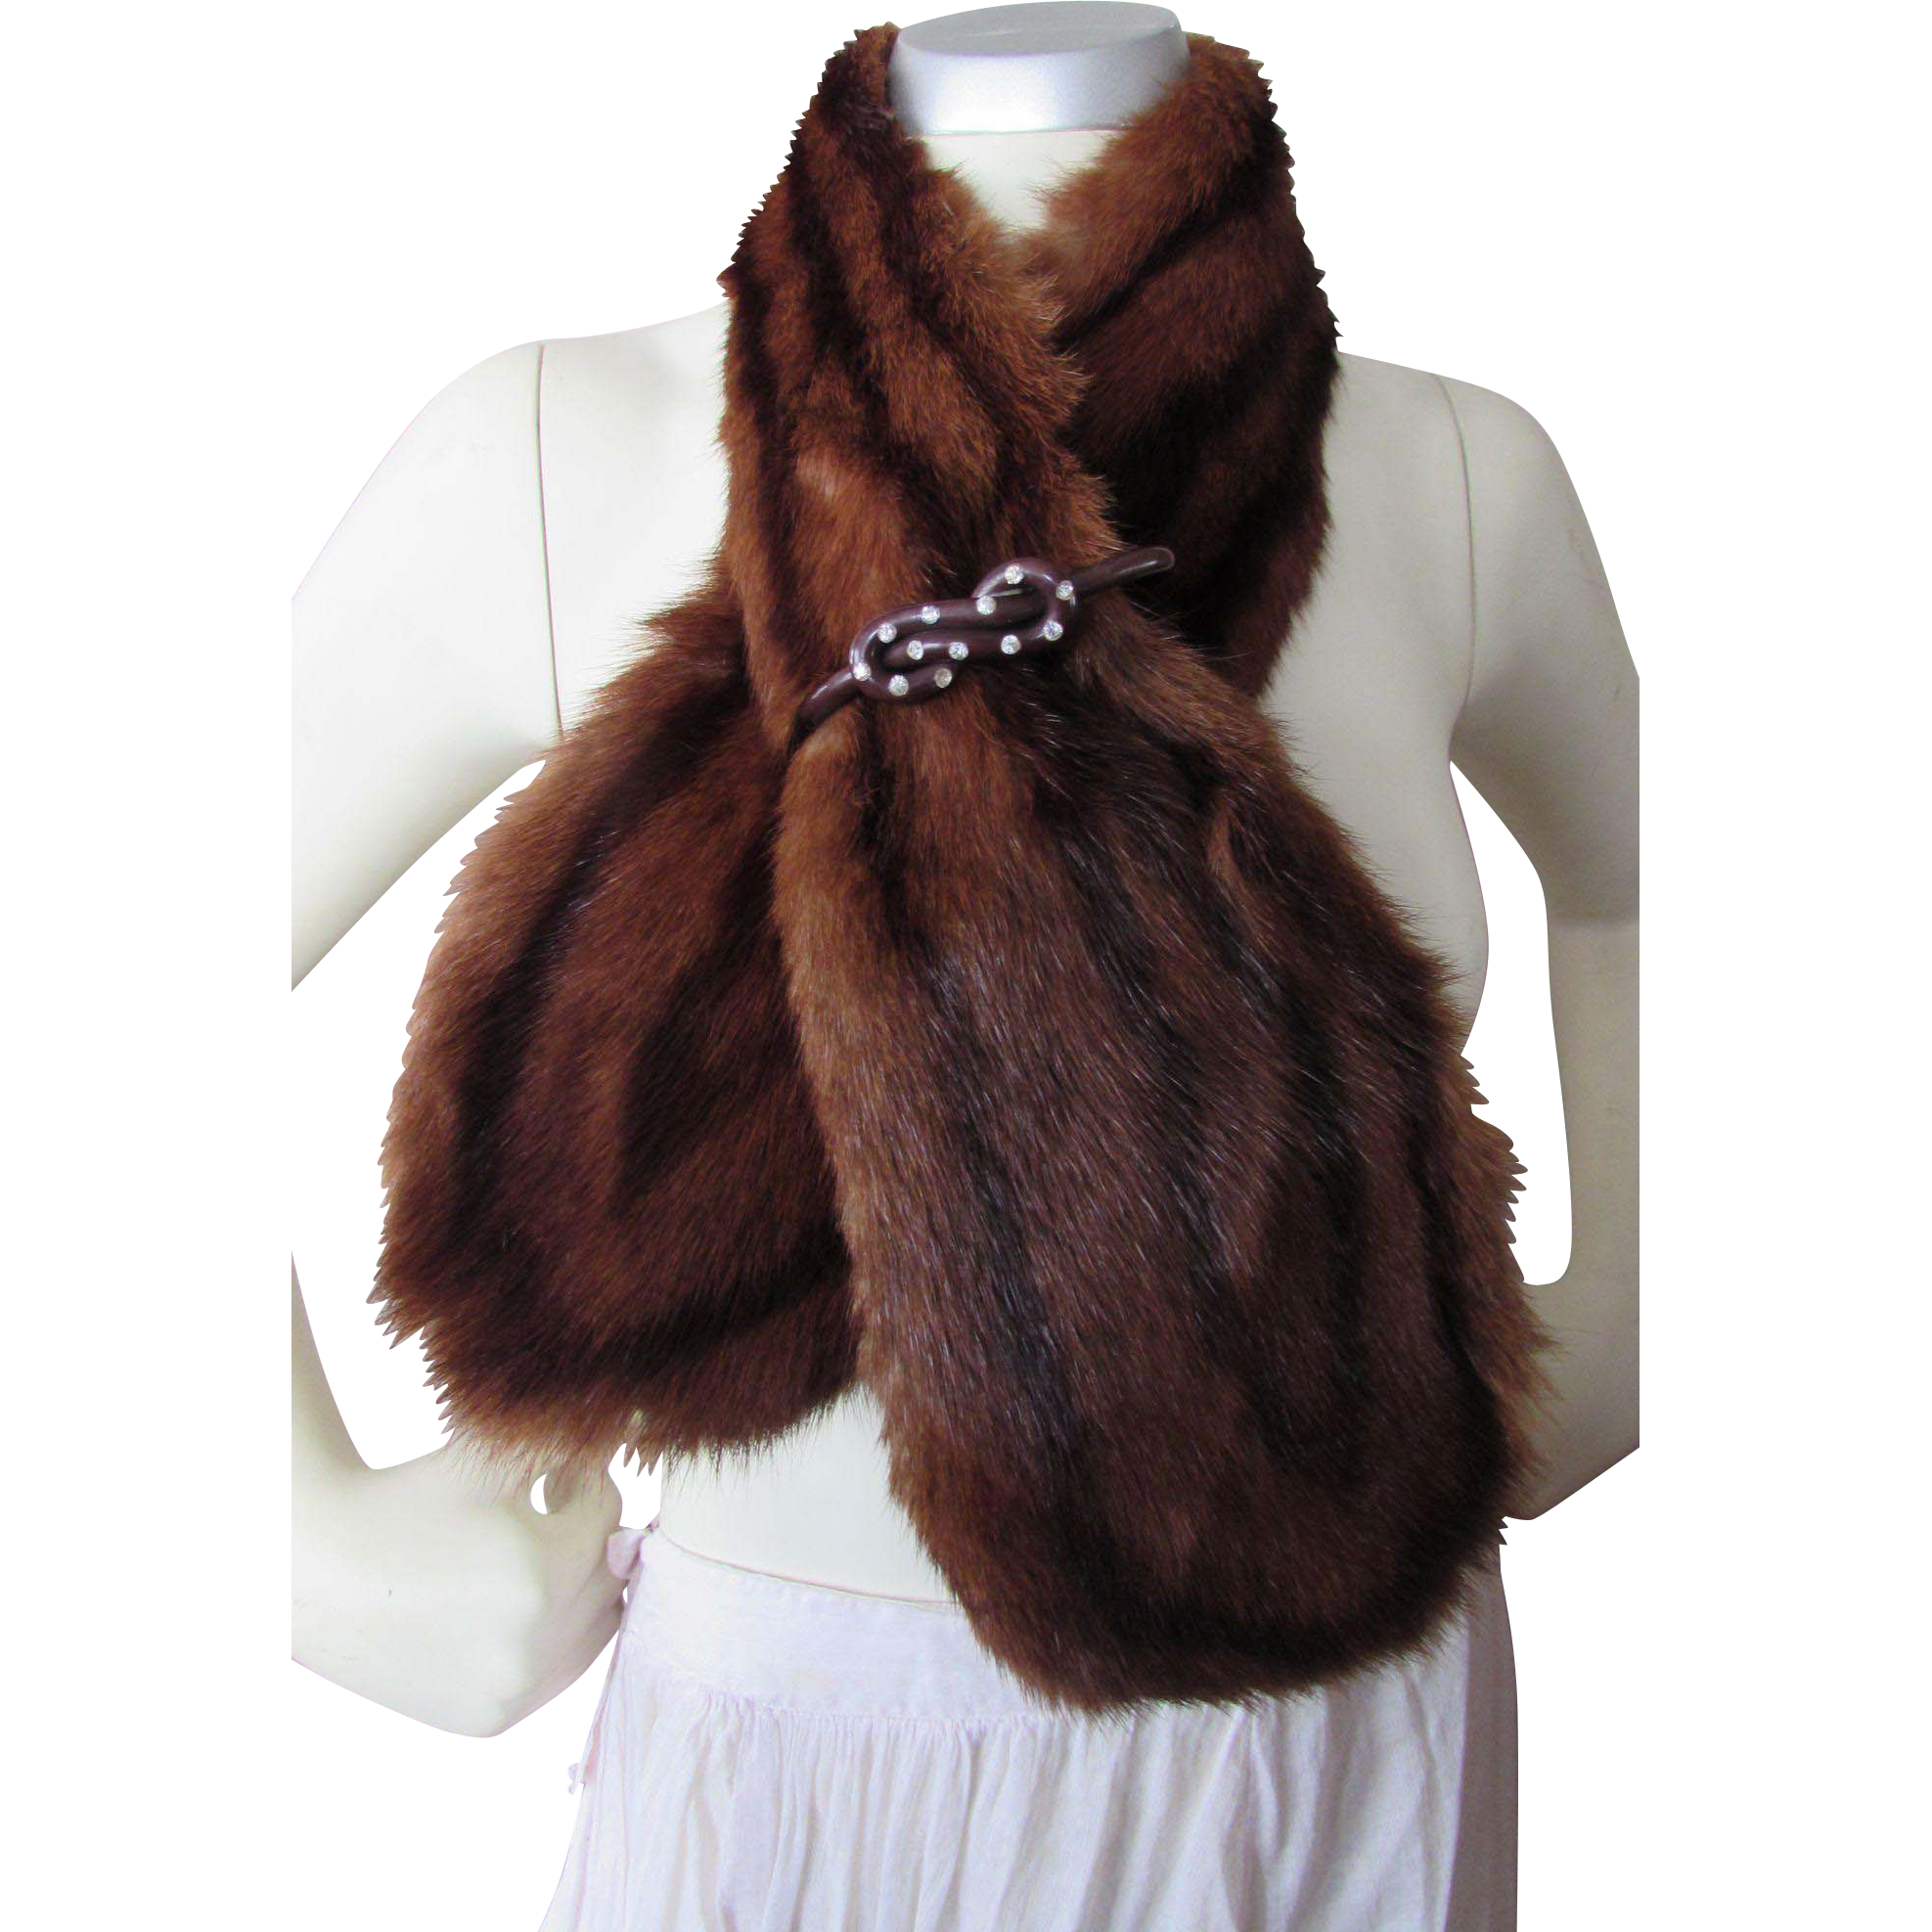 Handsome Mink Stole or Collar with Rhinestone Studded Plastic Barrette